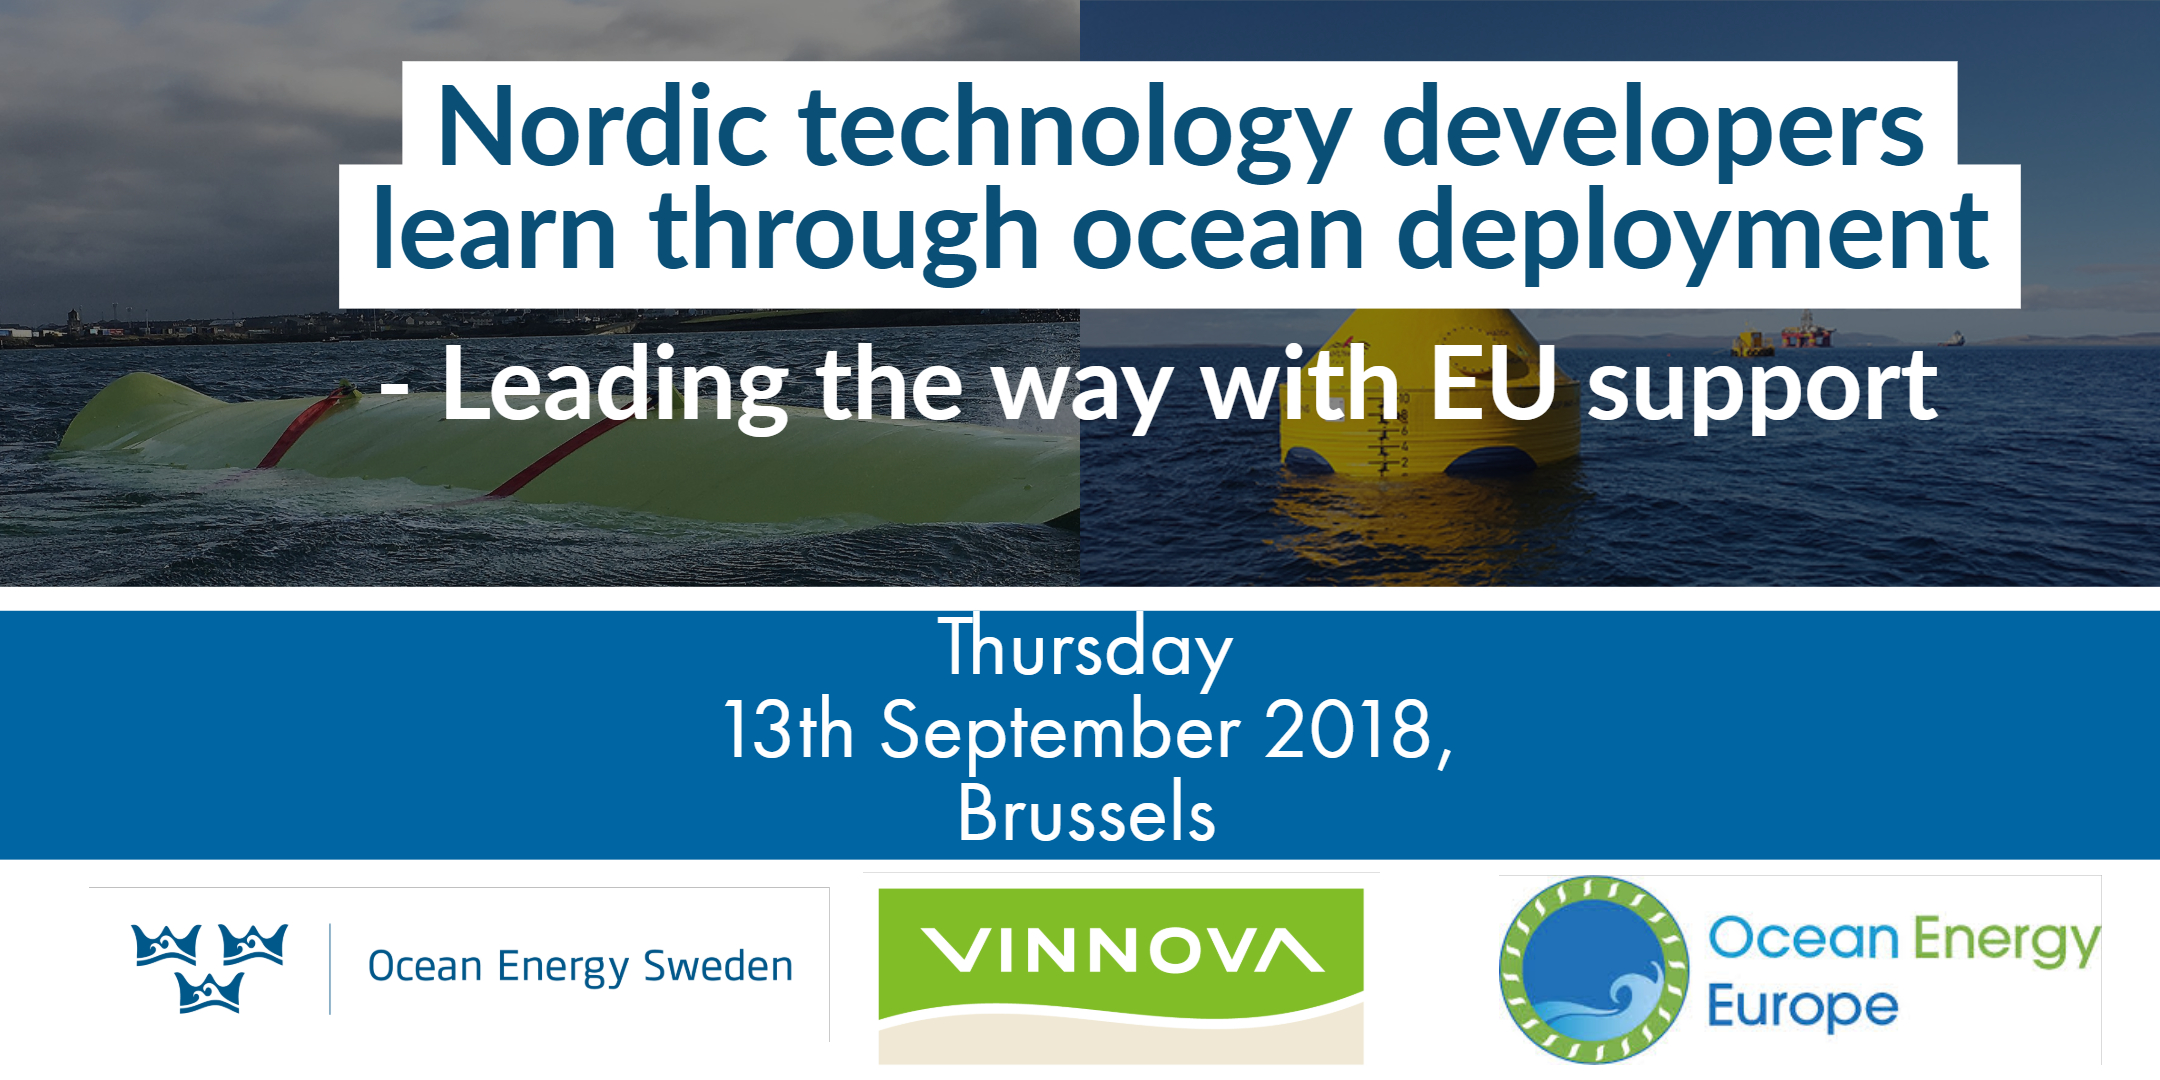 Ocean Energy Sweden is hosting an upcoming event in Brussels